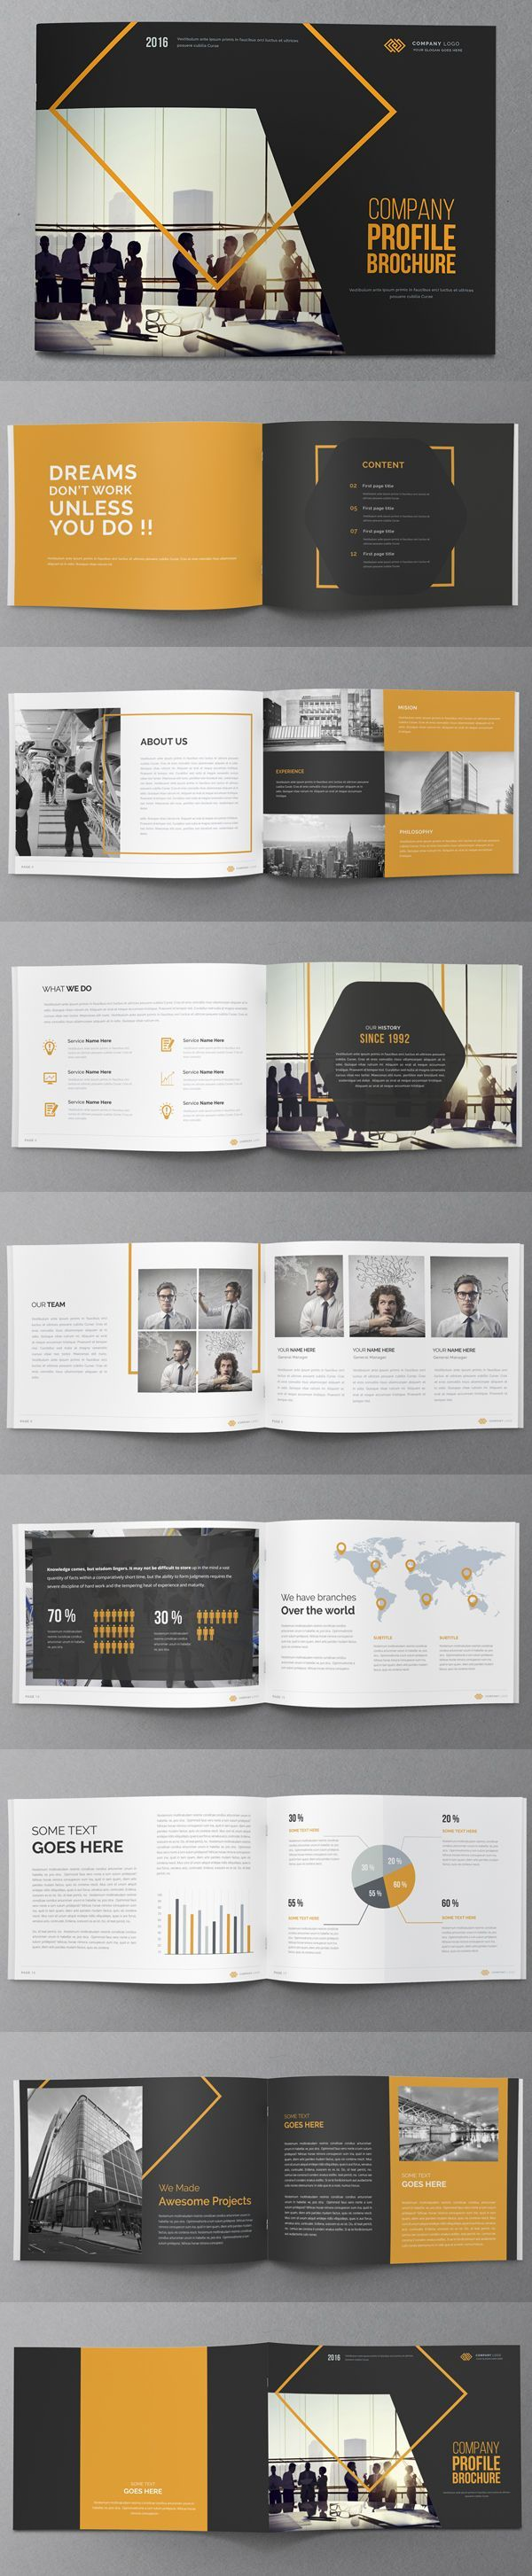 25 best ideas about Design Portfolio Layout on Pinterest